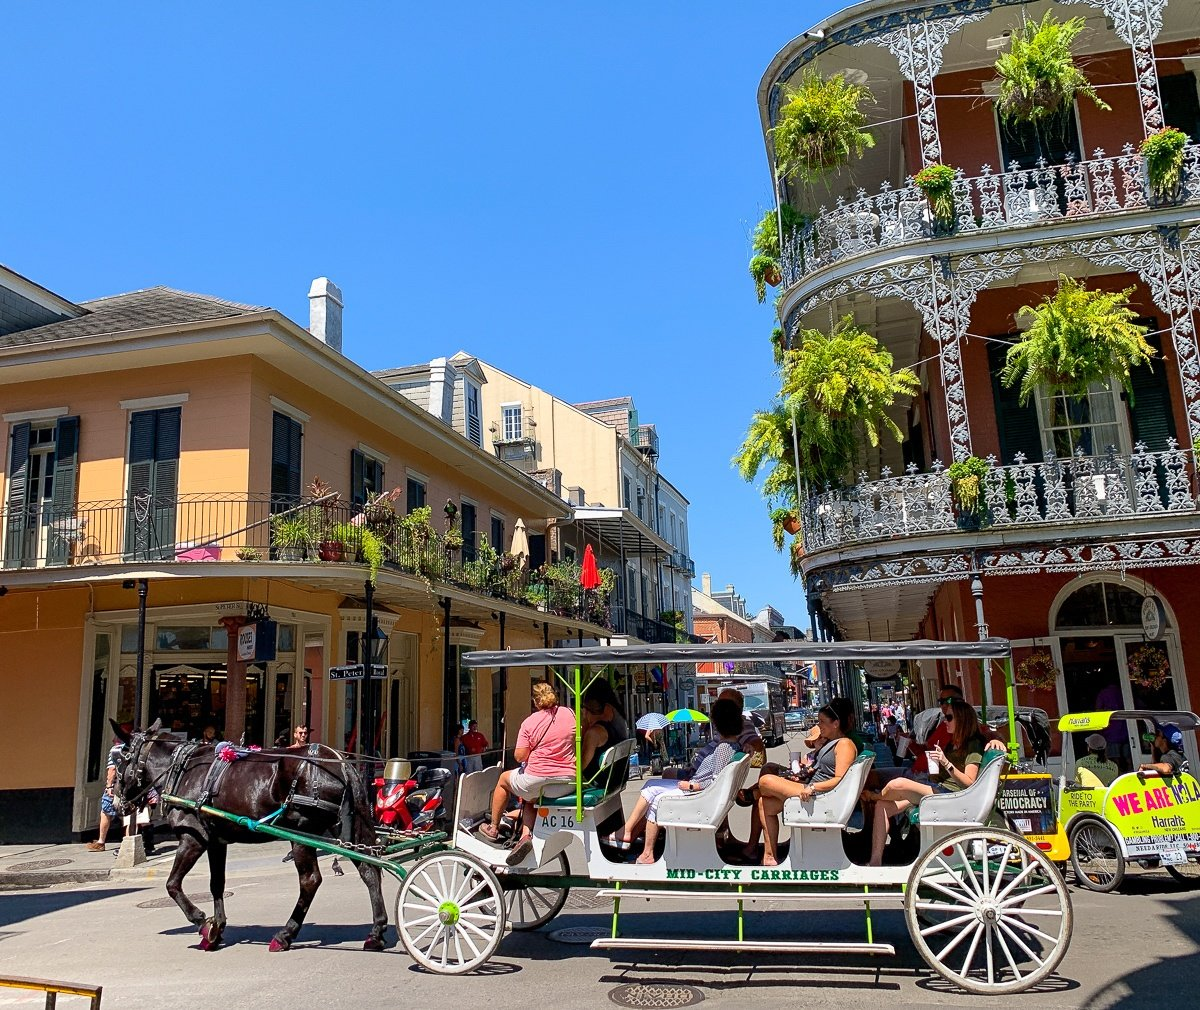 Mule-drawn carriage ride in the French Quarter of New Orleans with kids